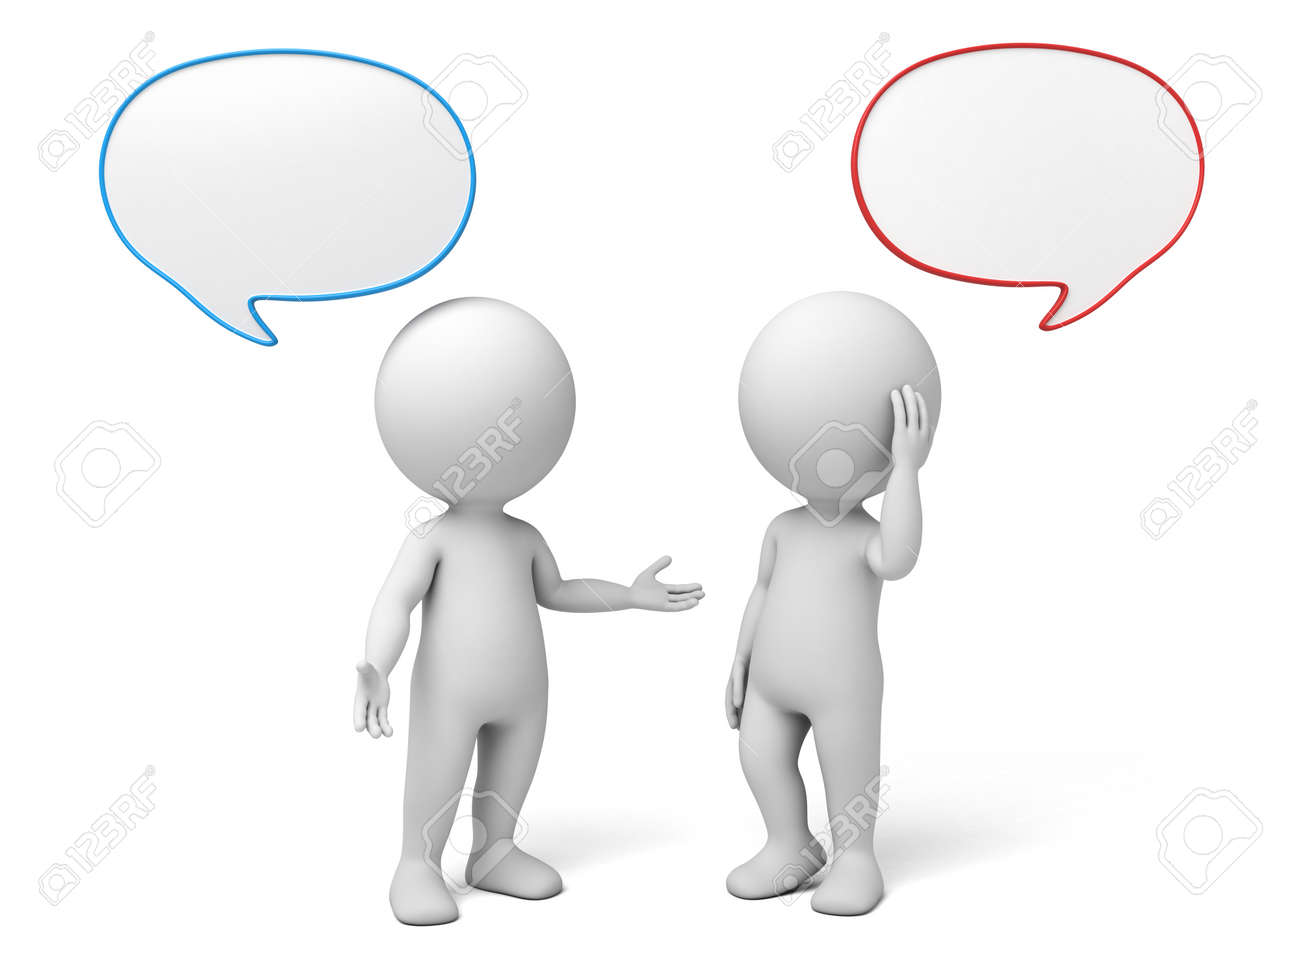 3d people talking with speech bubbles. 3d image. Isolated white background. - 42646074